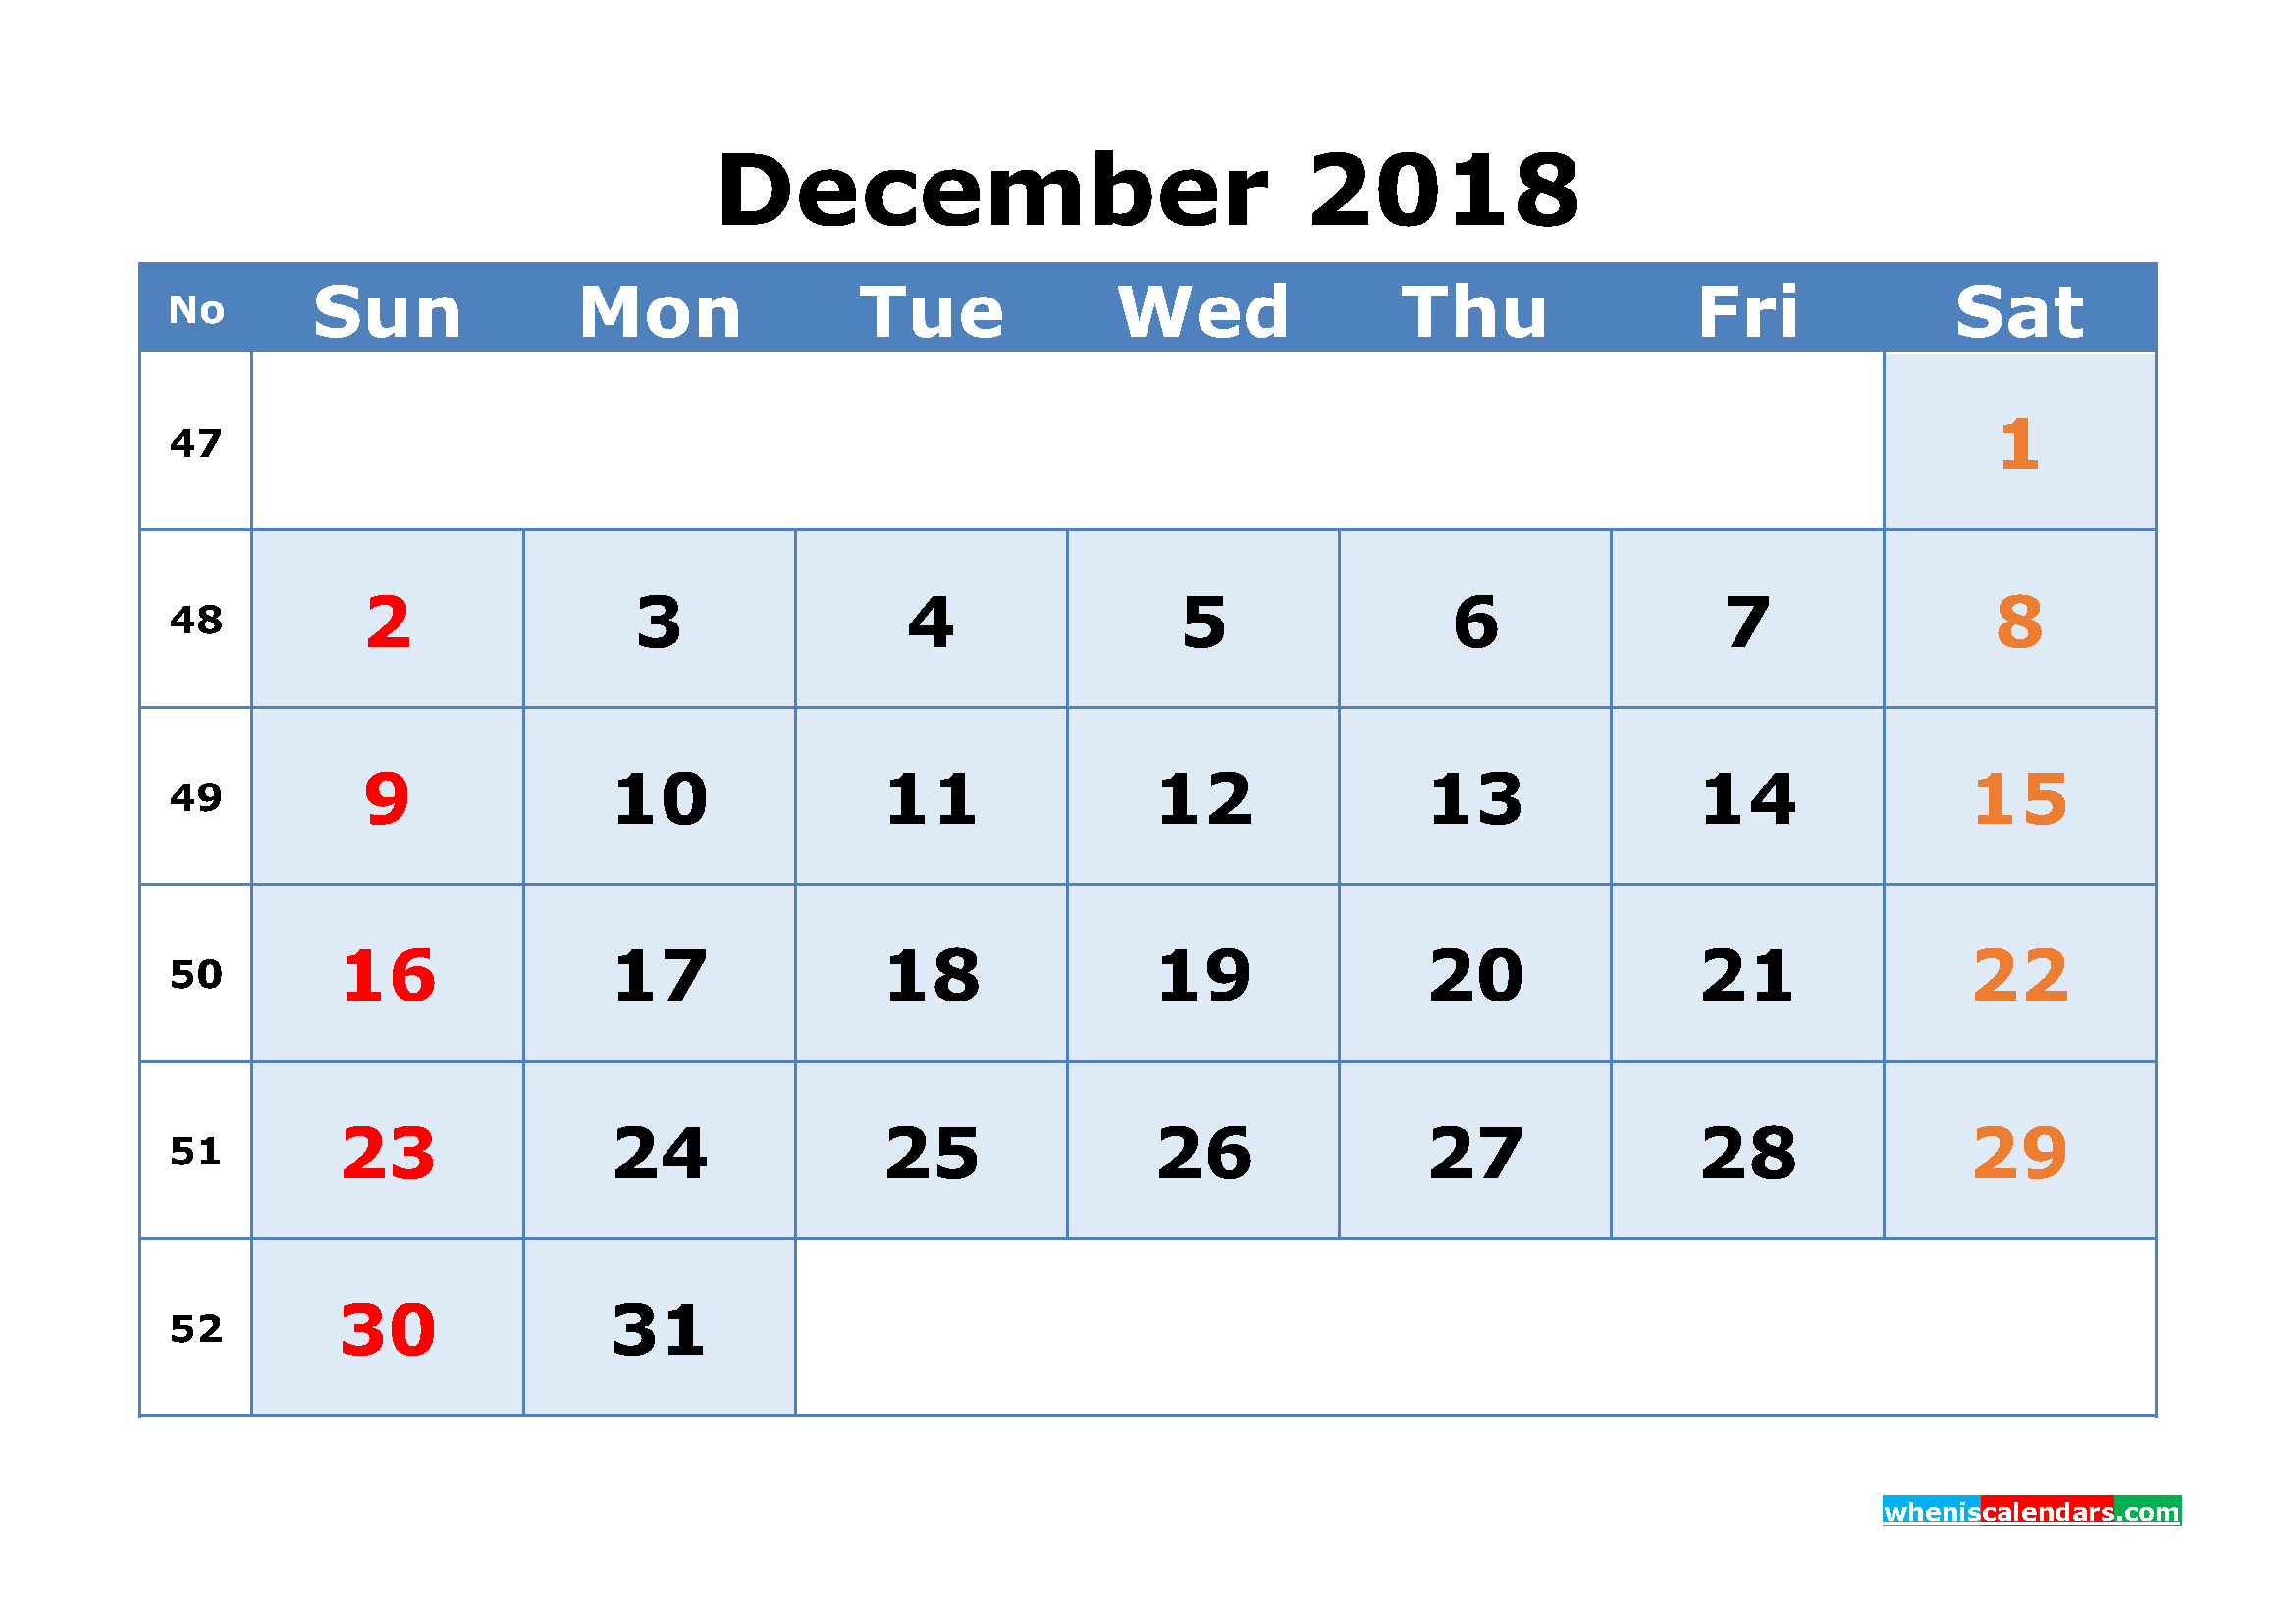 Printable Calendar December 2018 with Week Numbers as, Image